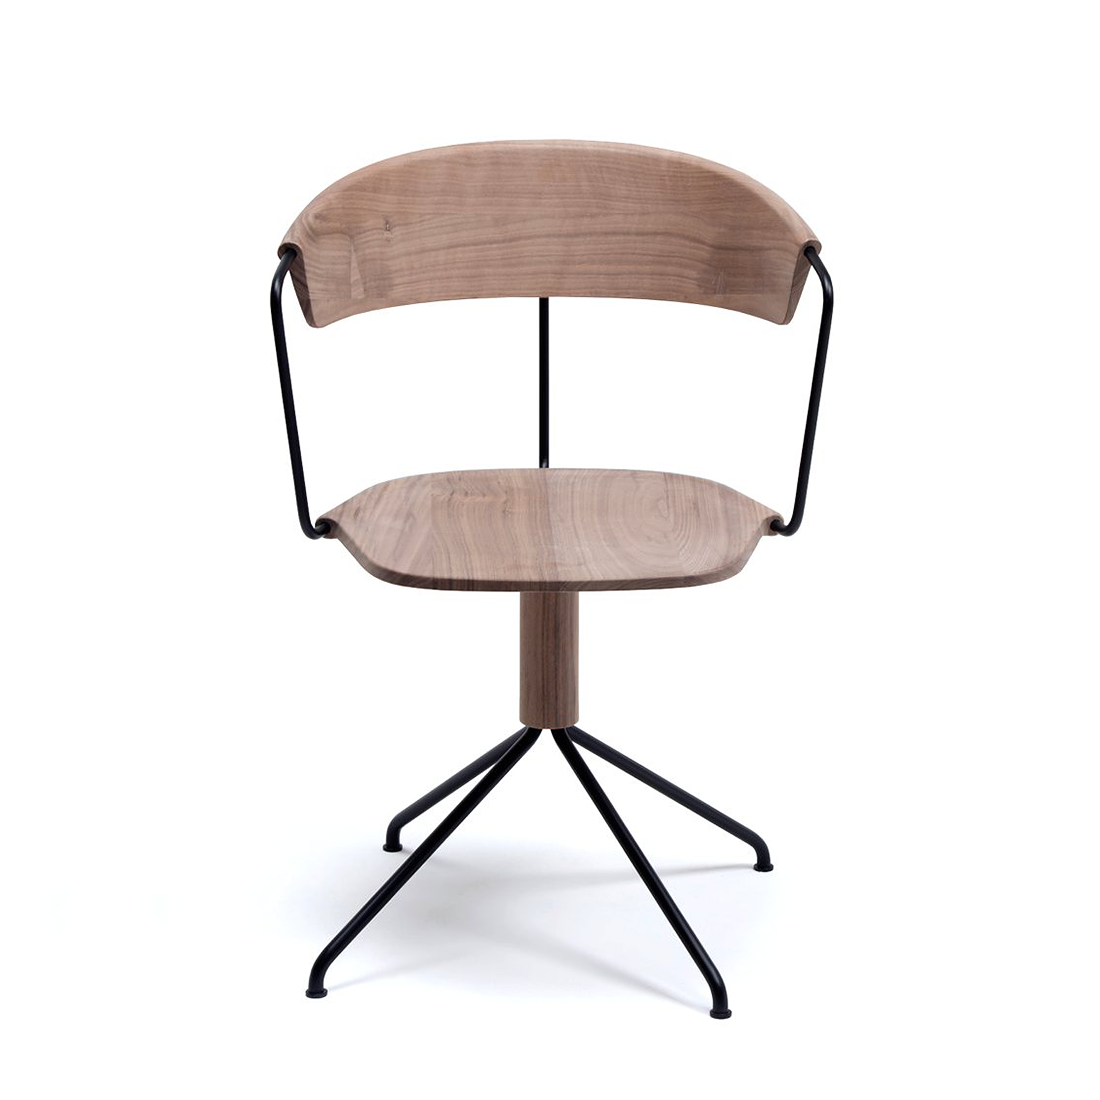 Mattiazzi MC9 Uncino Wooden Swivel Chair Version A 西諾 木質 旋轉椅 寬背版